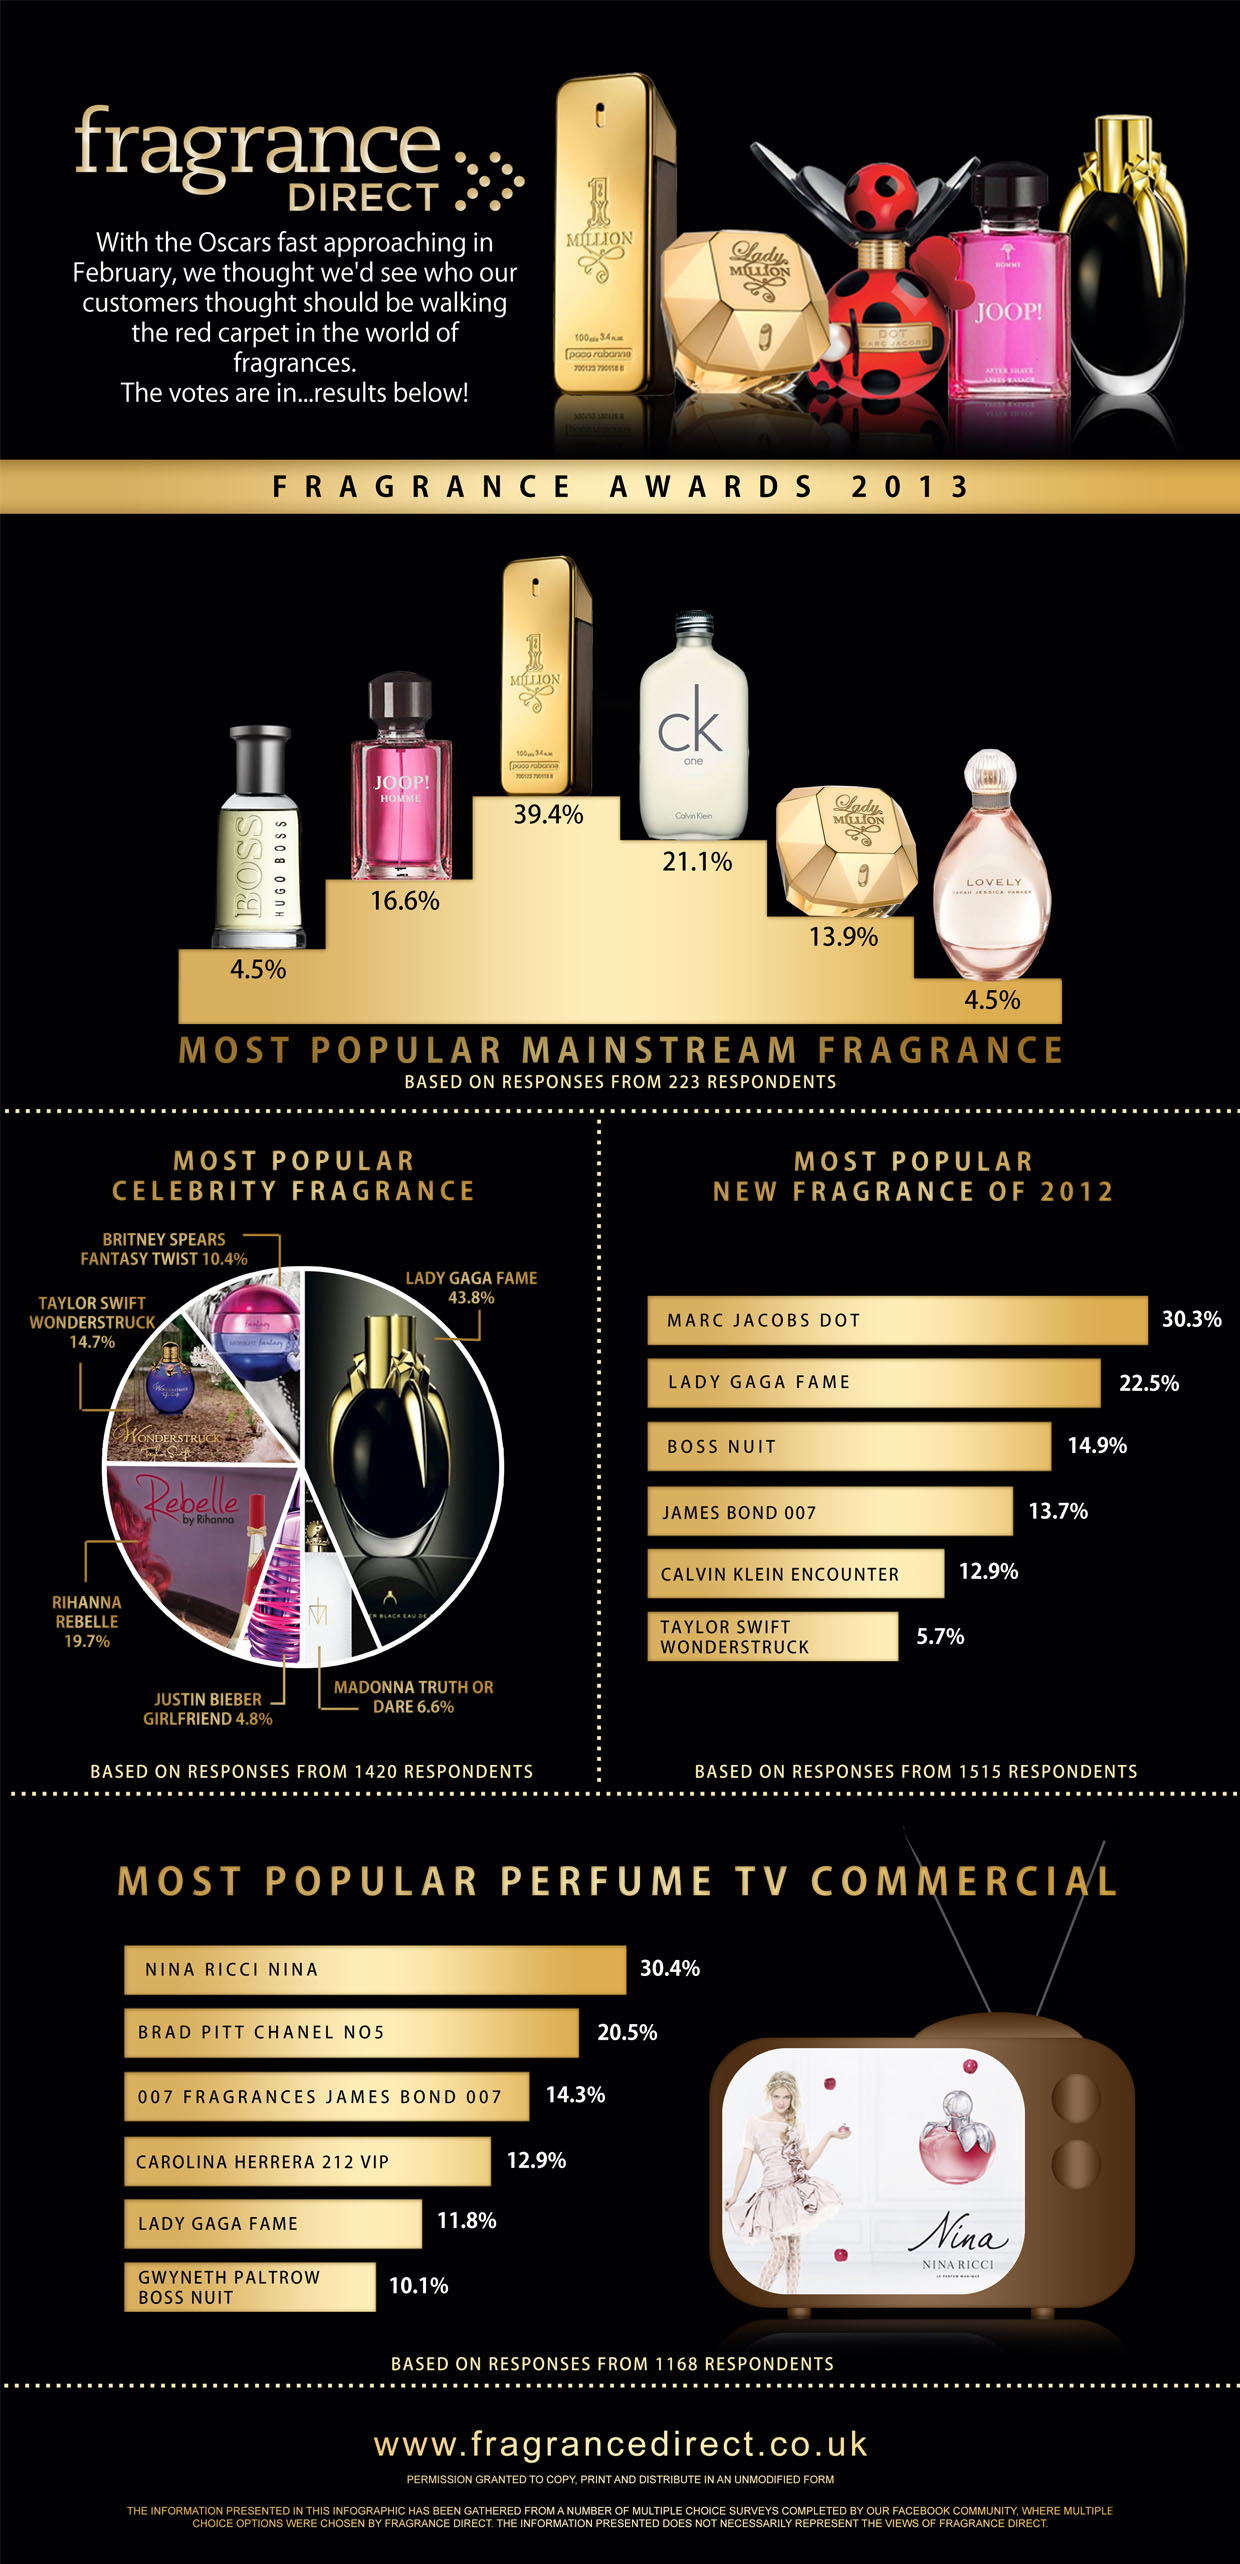 Fragrance Direct Reveal Their Perfume Hits For 2012